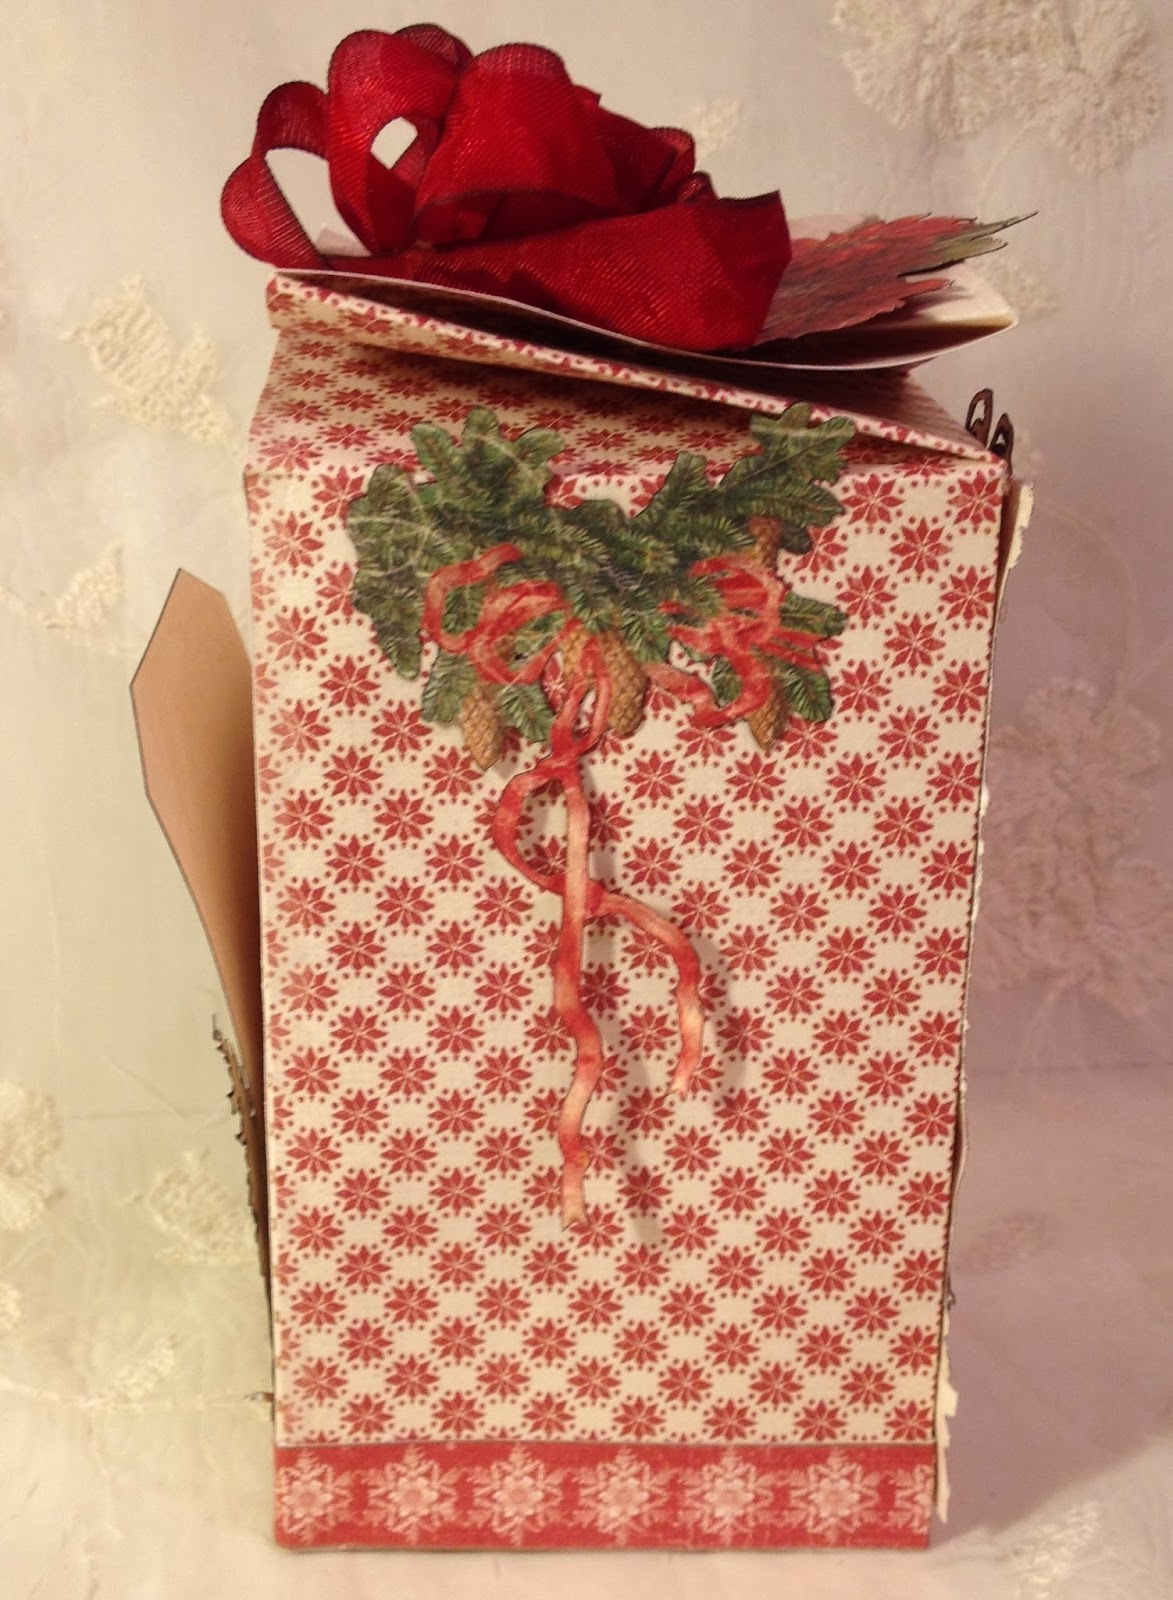 Annes Papercreations Tutorial Twisted Christmas Gift